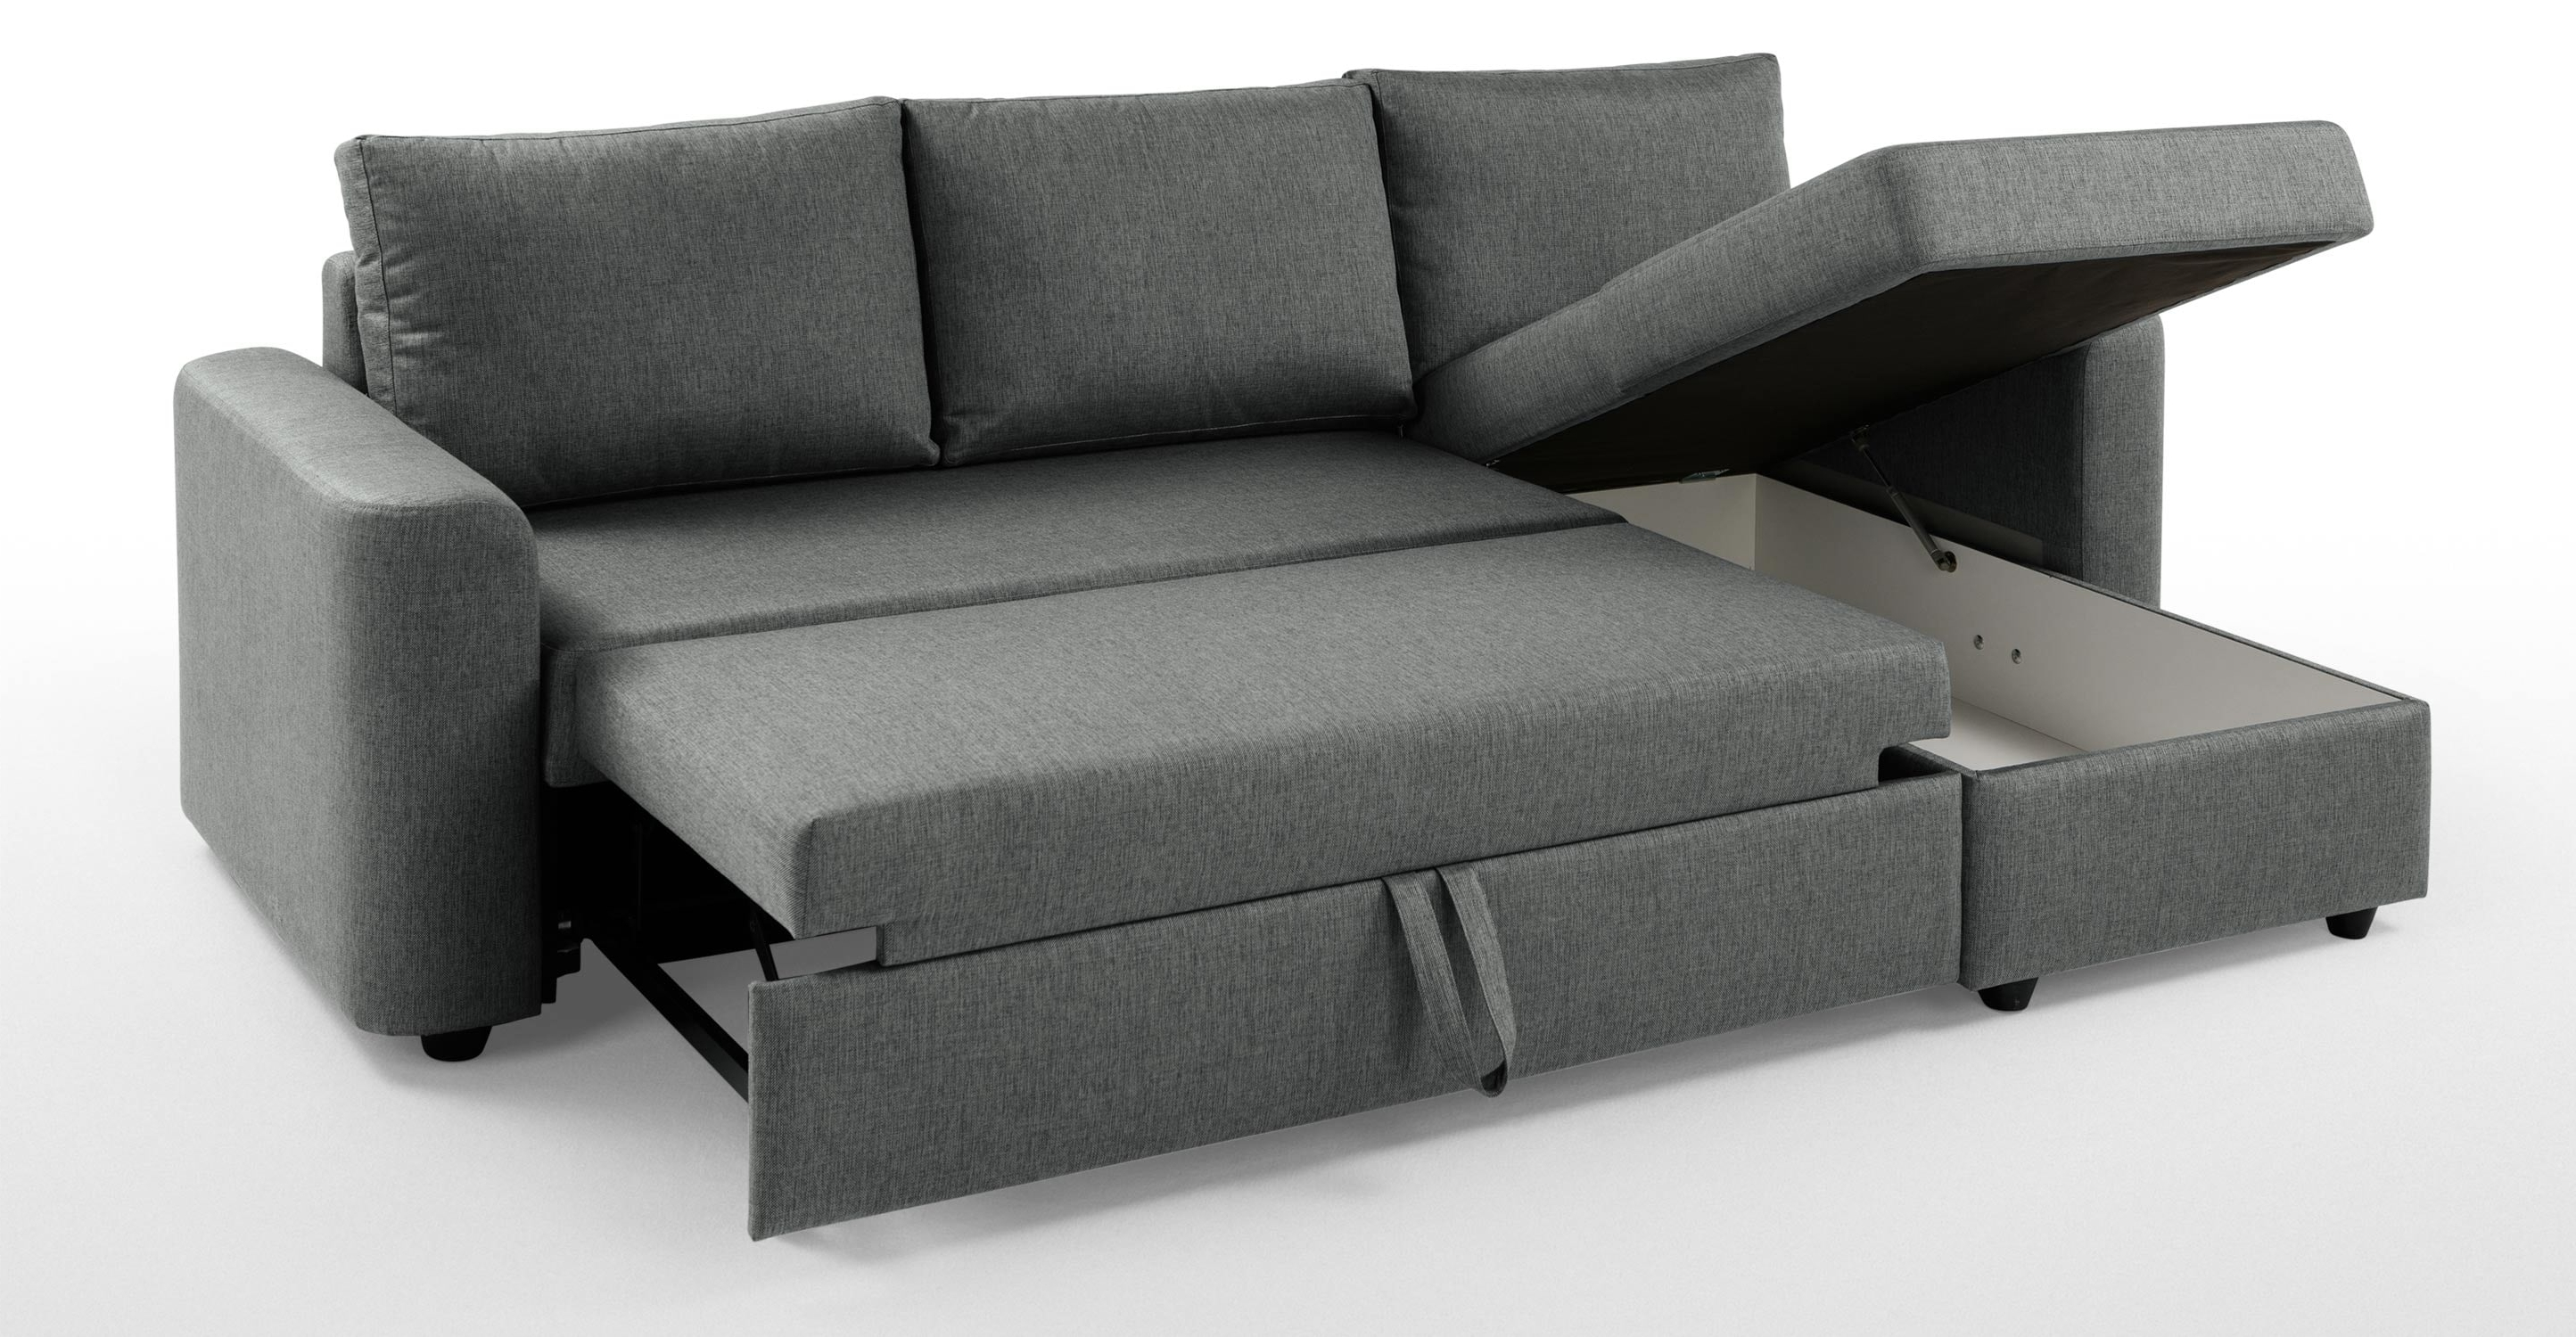 Chaise Sofa Bed With Storage – Storage Designs Within Popular Sofa Beds With Chaise (View 15 of 15)